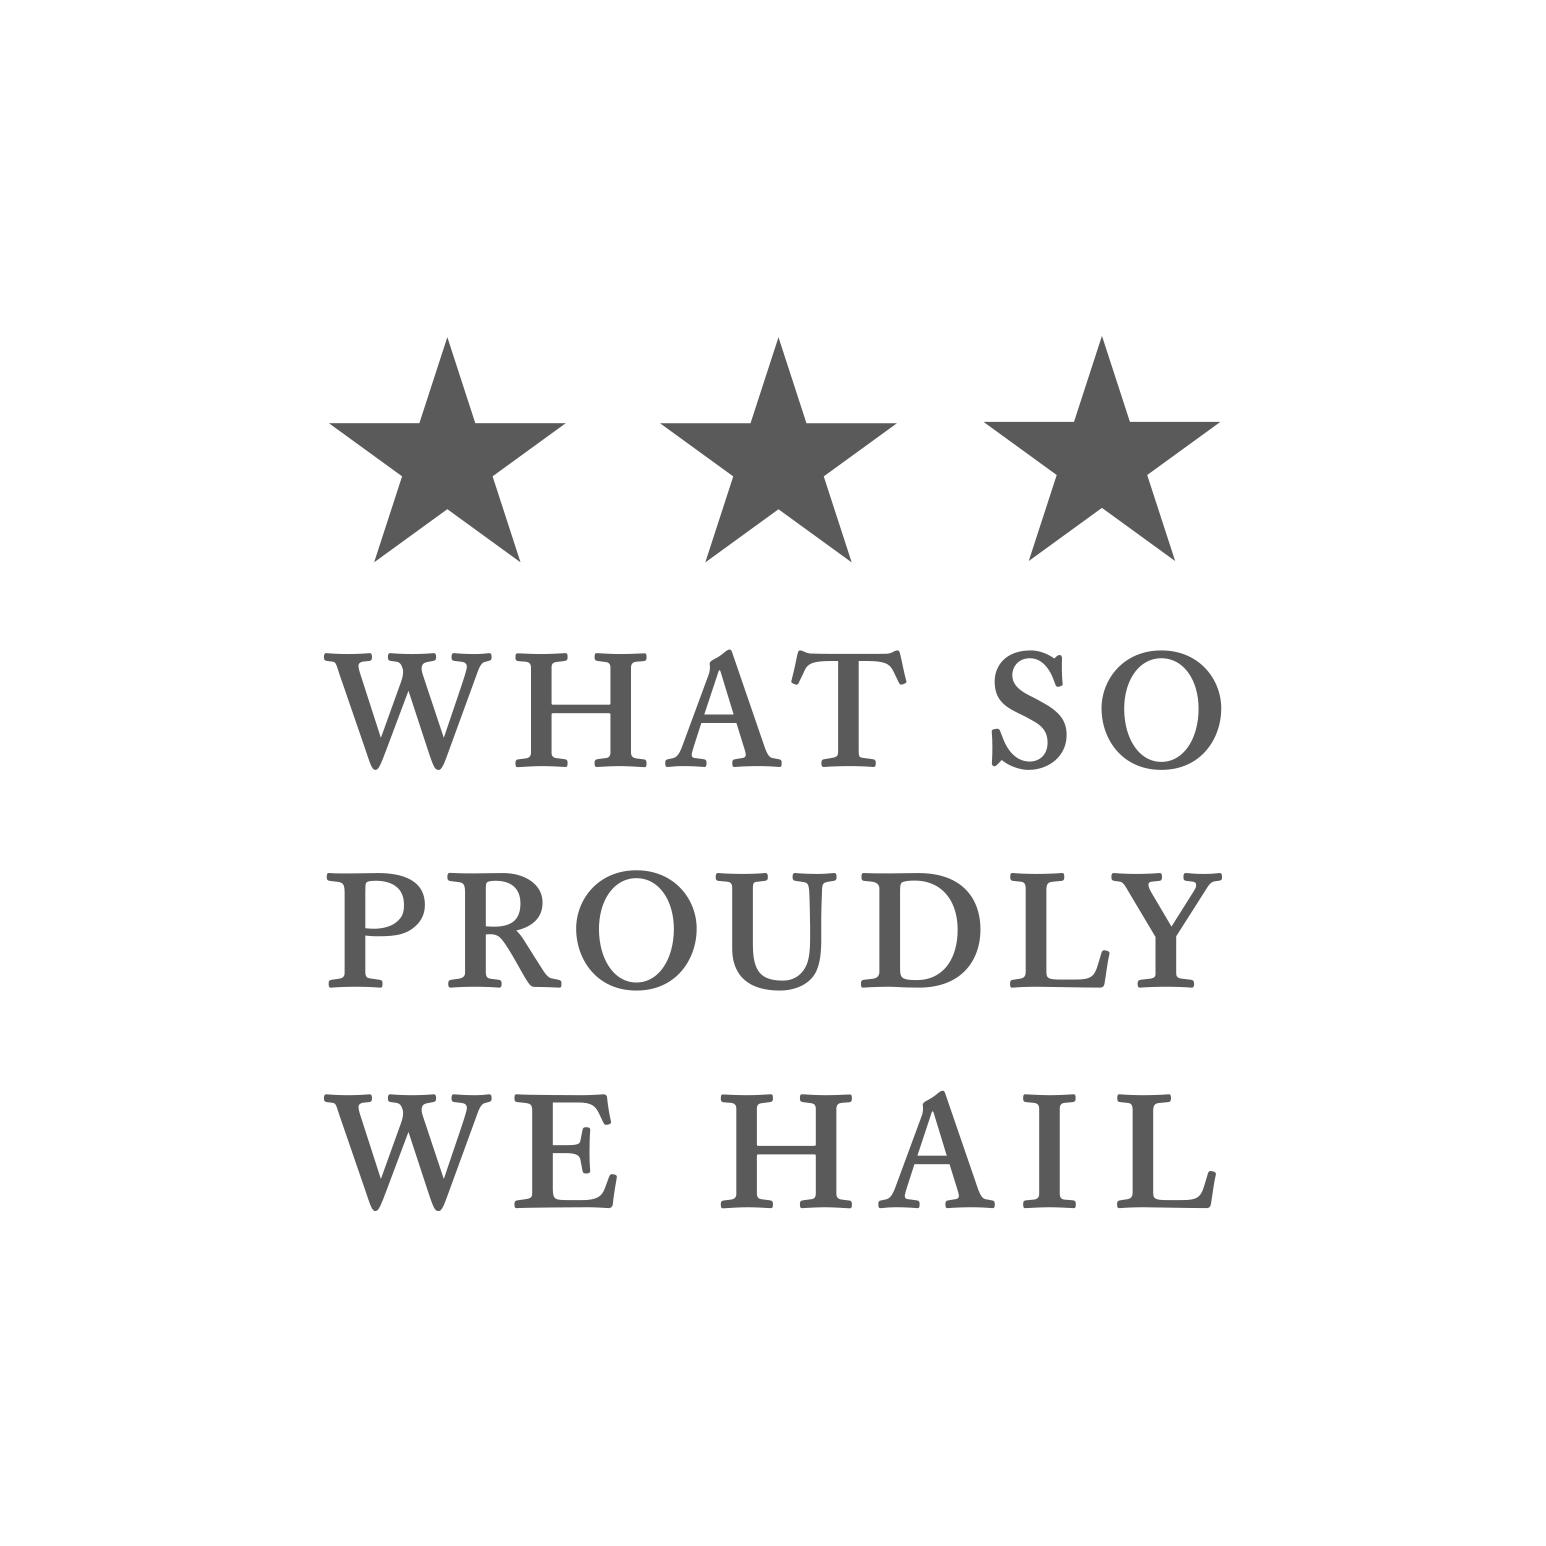 What So Proudly We Hail